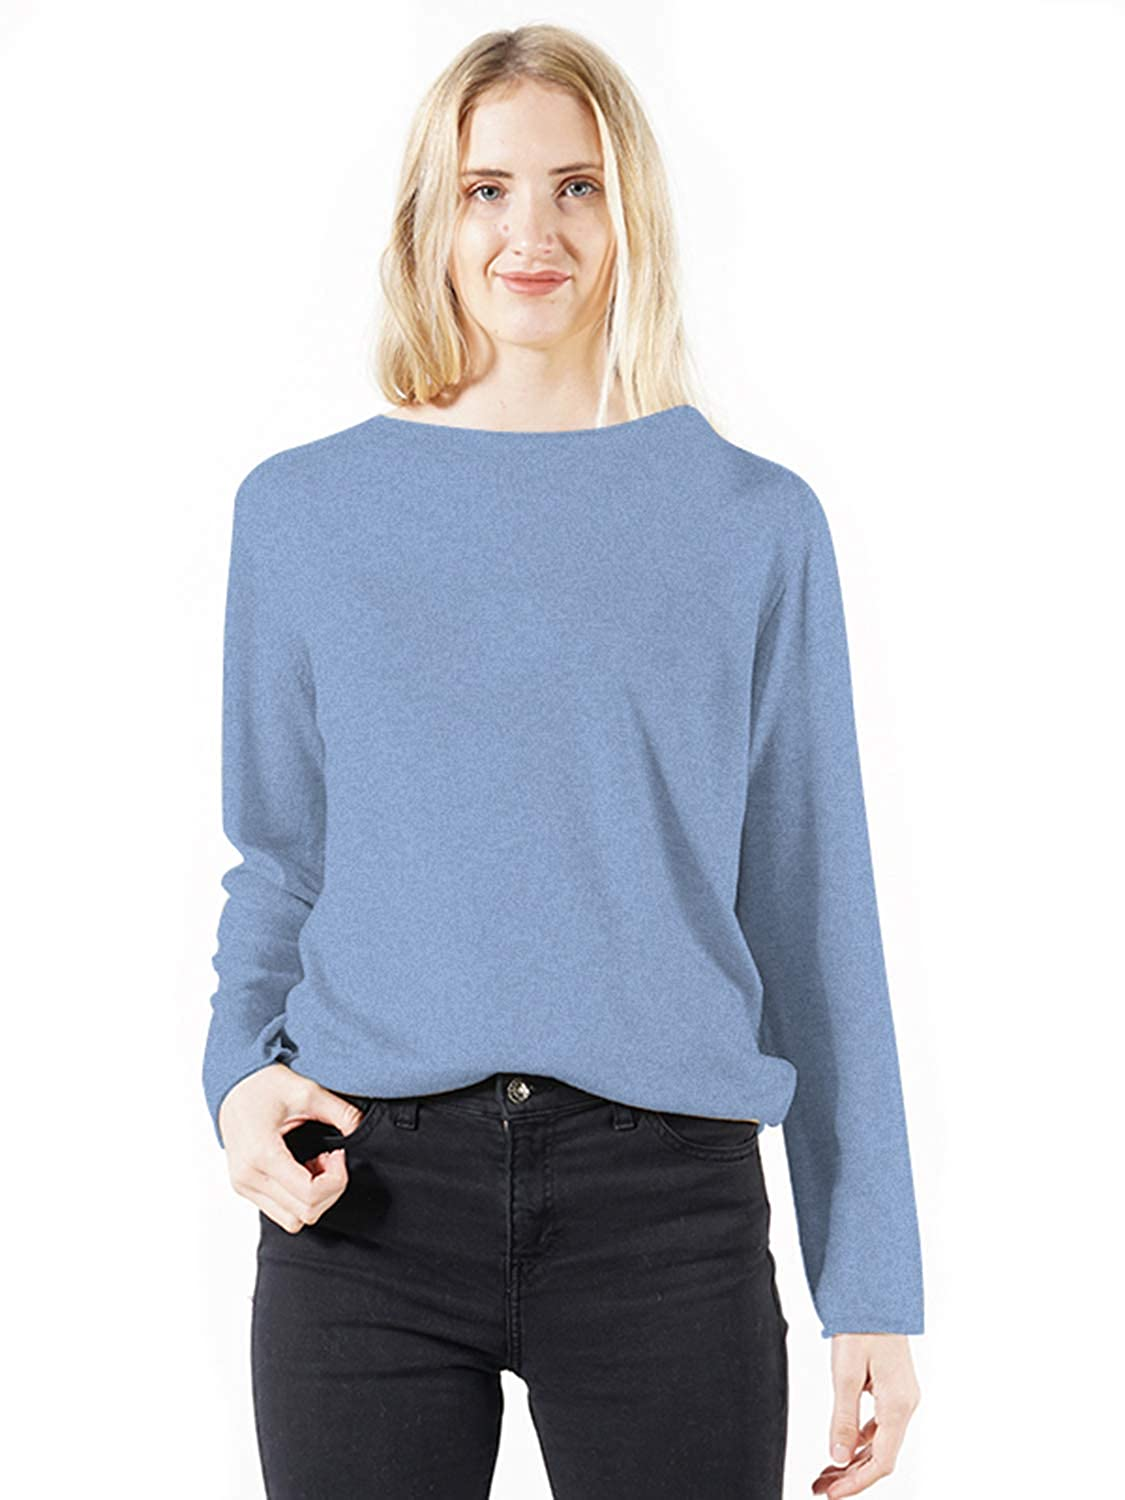 Light bluee DEEBAI Women's Crew Neck Long Sleeve Sweatshirts Casual Loose Solid color Knitted Top Blouse